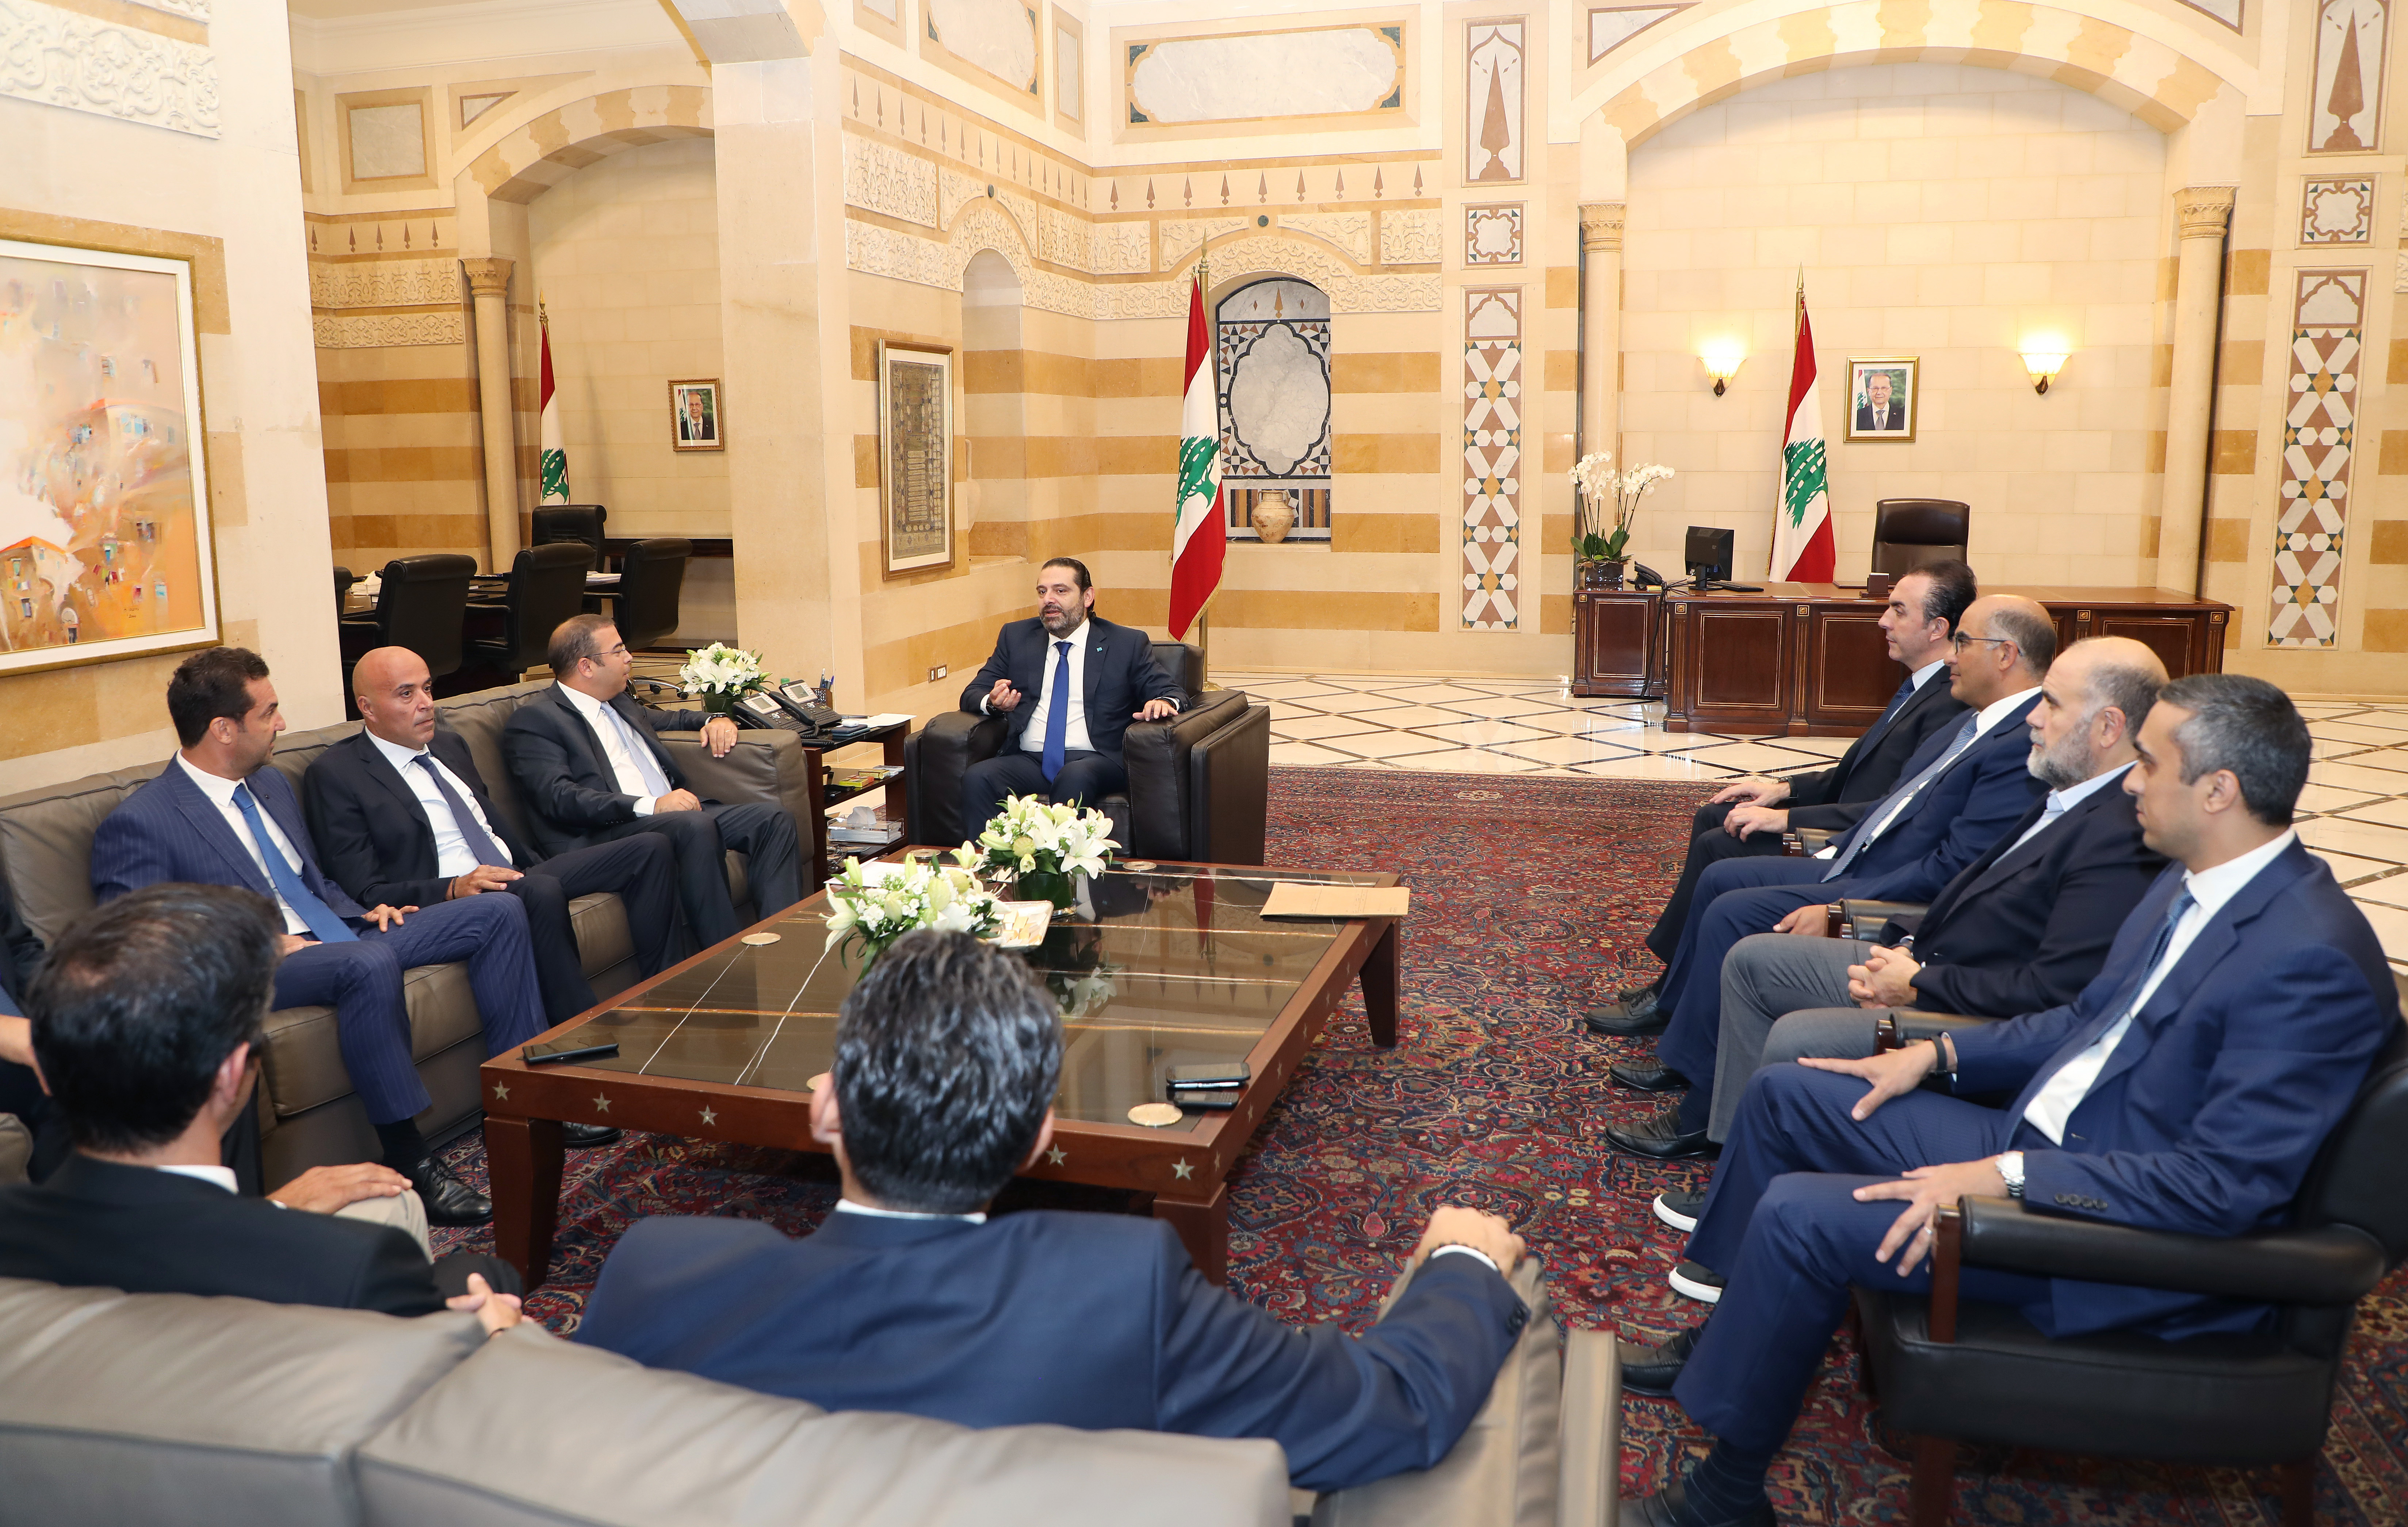 Pr Minister Saad Hariri meets a Delegation from Gluf Club 1